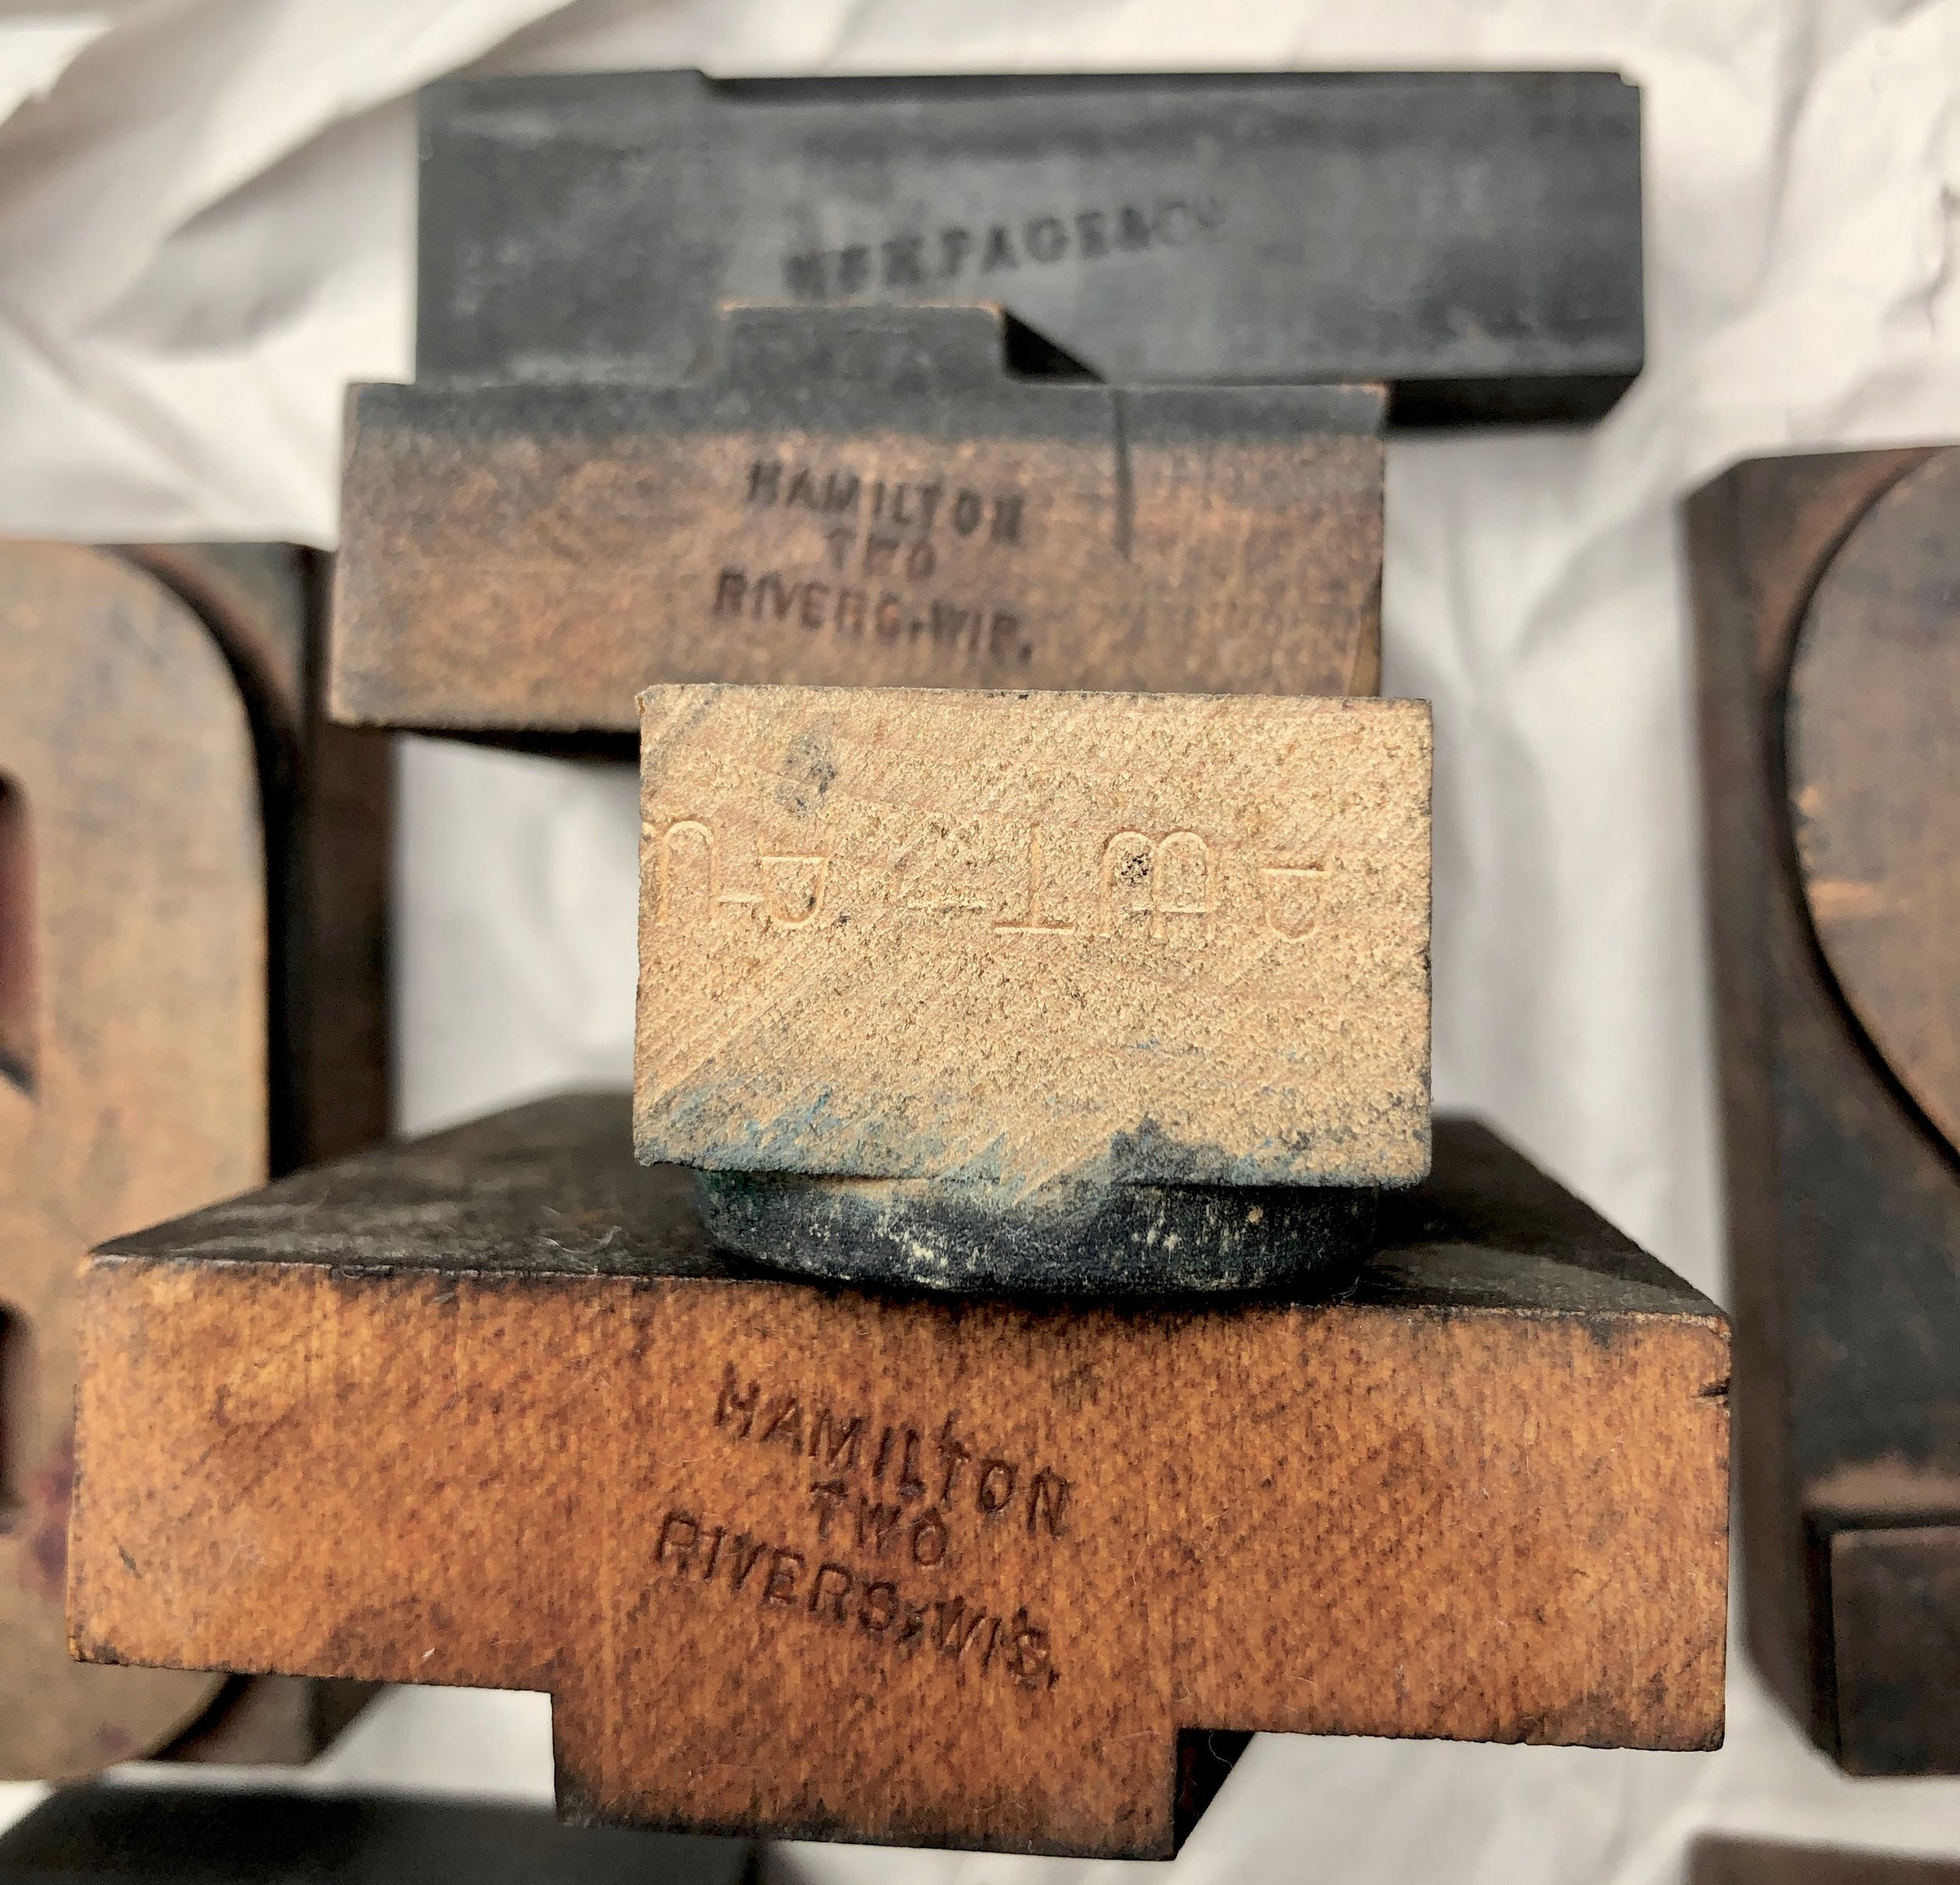 "Four of the pieces I've processed so far have factory marks: Hamilton Manufacturing Company (which was in Two Rivers, Wisconsin), AWT for American Wood Type (Long Island City, NY), and ""WmH.PAGE&Co"" for William H. Page & Company (Connecticut)."